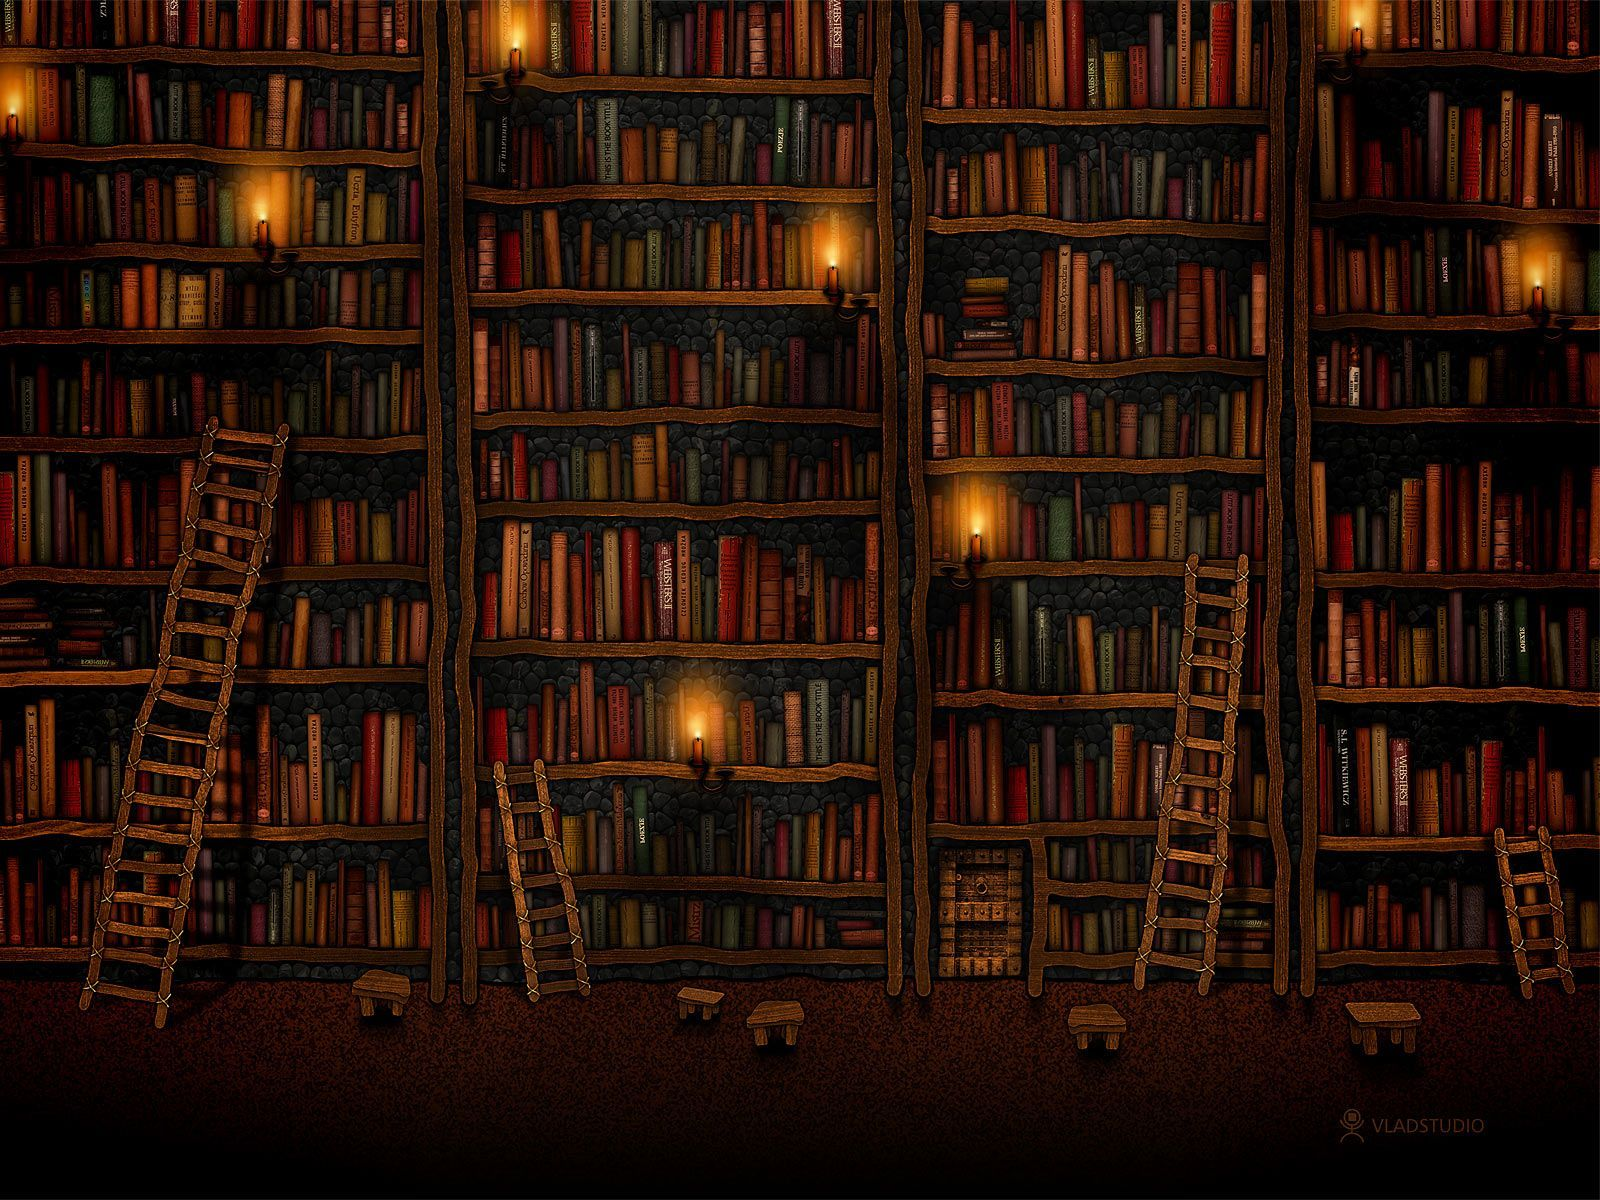 Cozy Library Wallpapers   Top Cozy Library Backgrounds 1600x1200